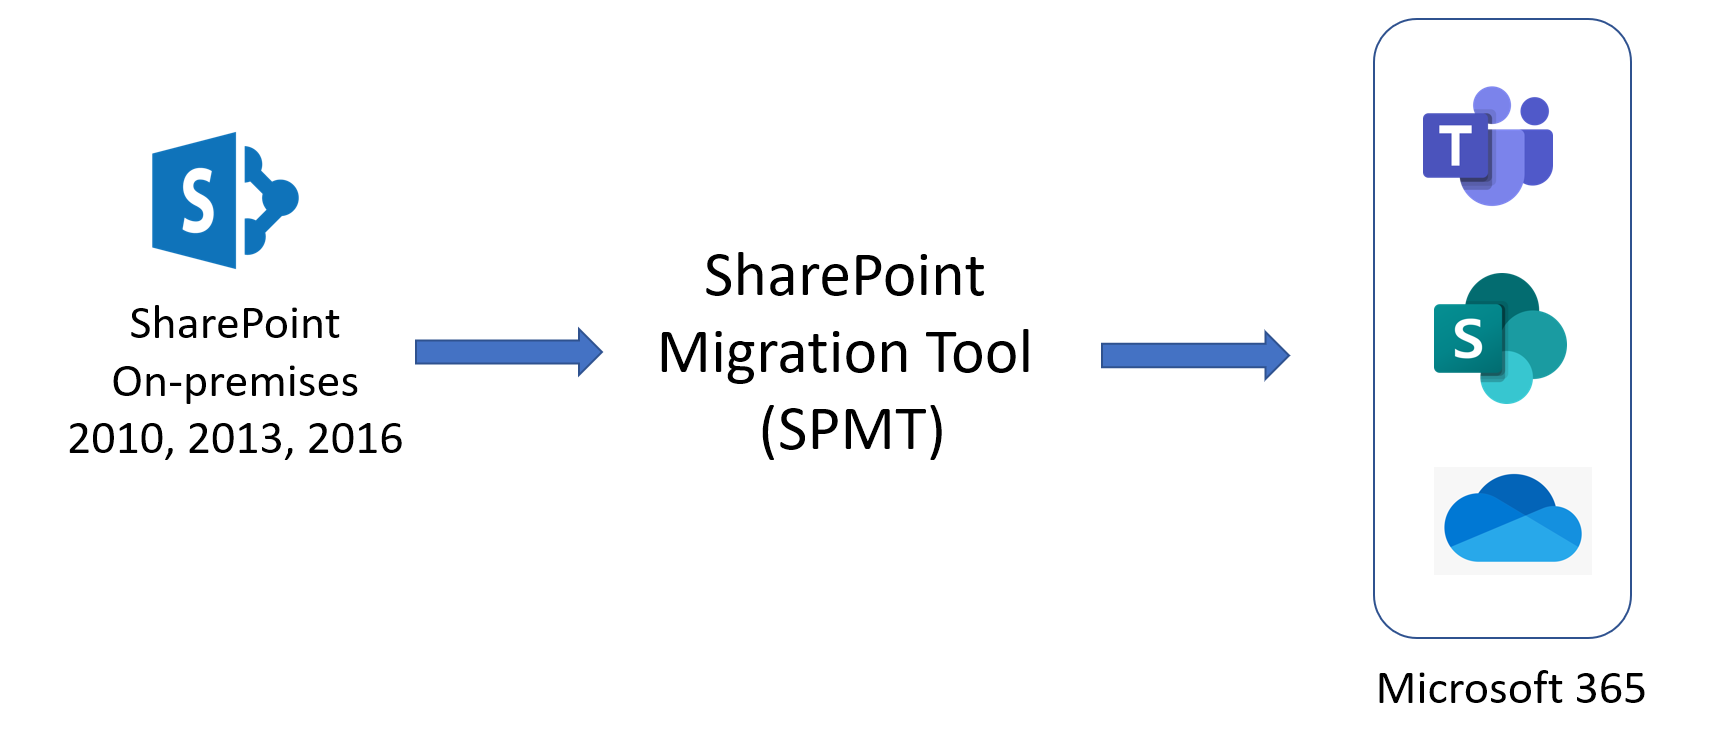 Migrating content to SharePoint Online with SharePoint Migration Tool (SPMT)